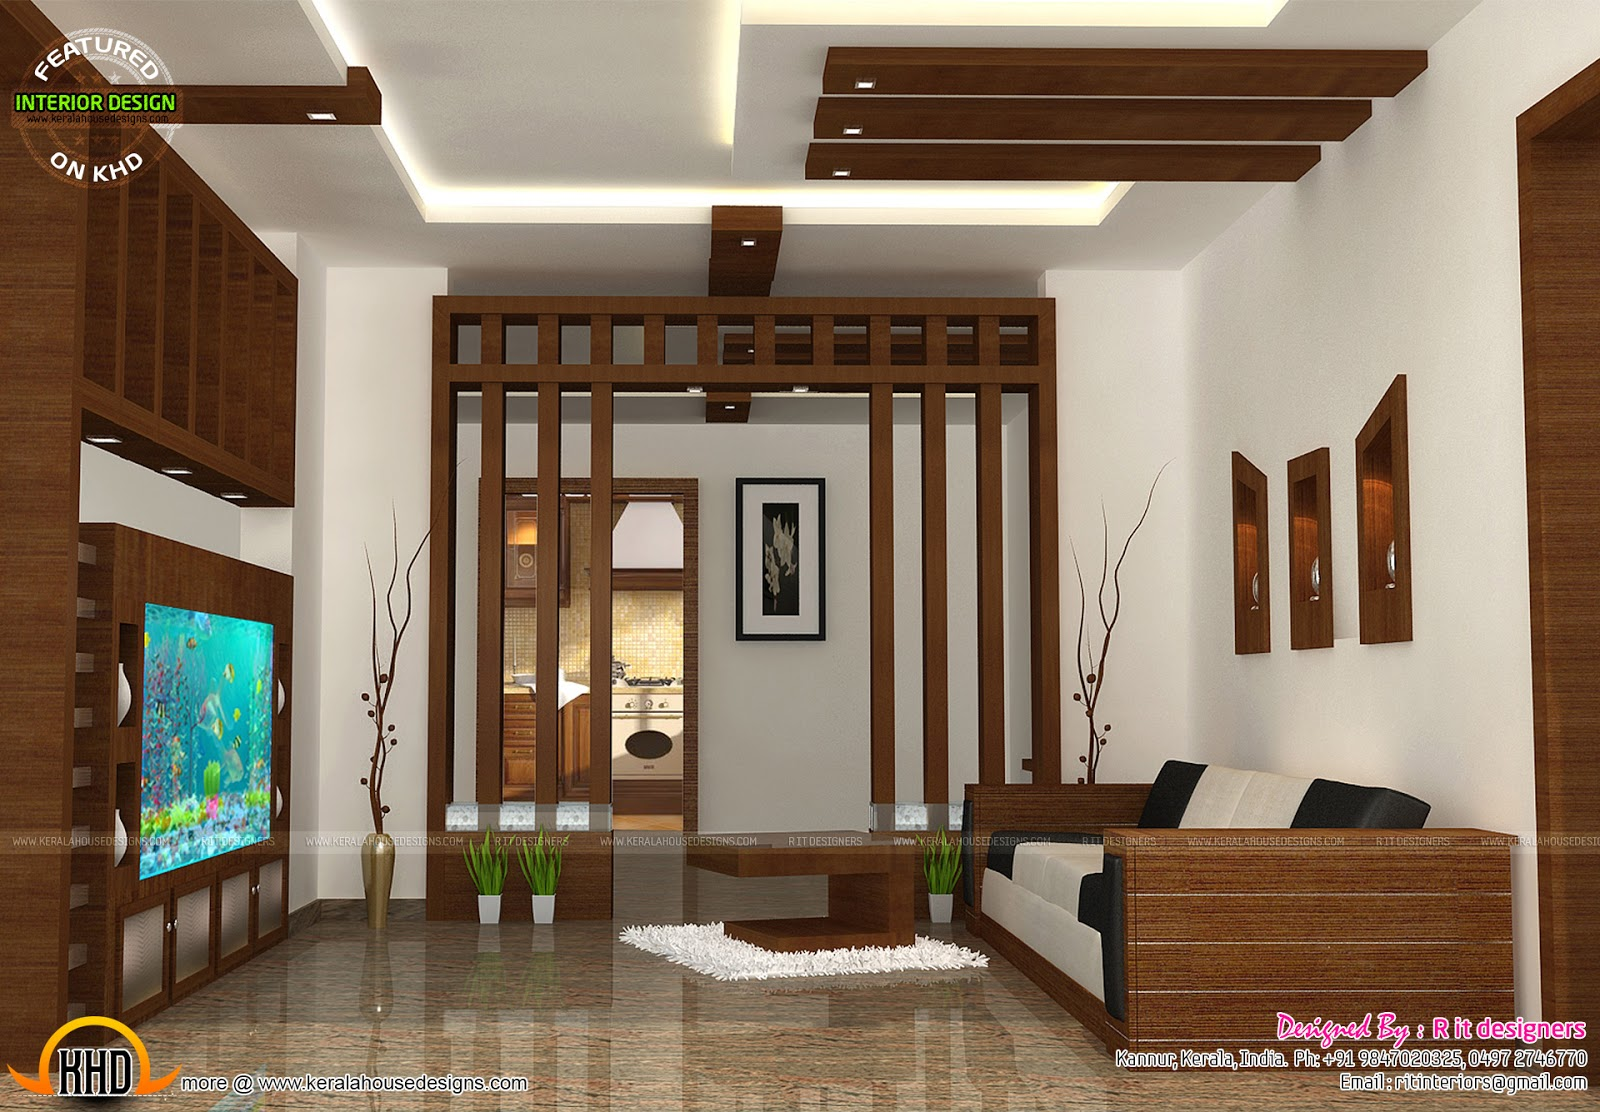 Wooden finish interiors kerala home design and floor plans for Home interior design images